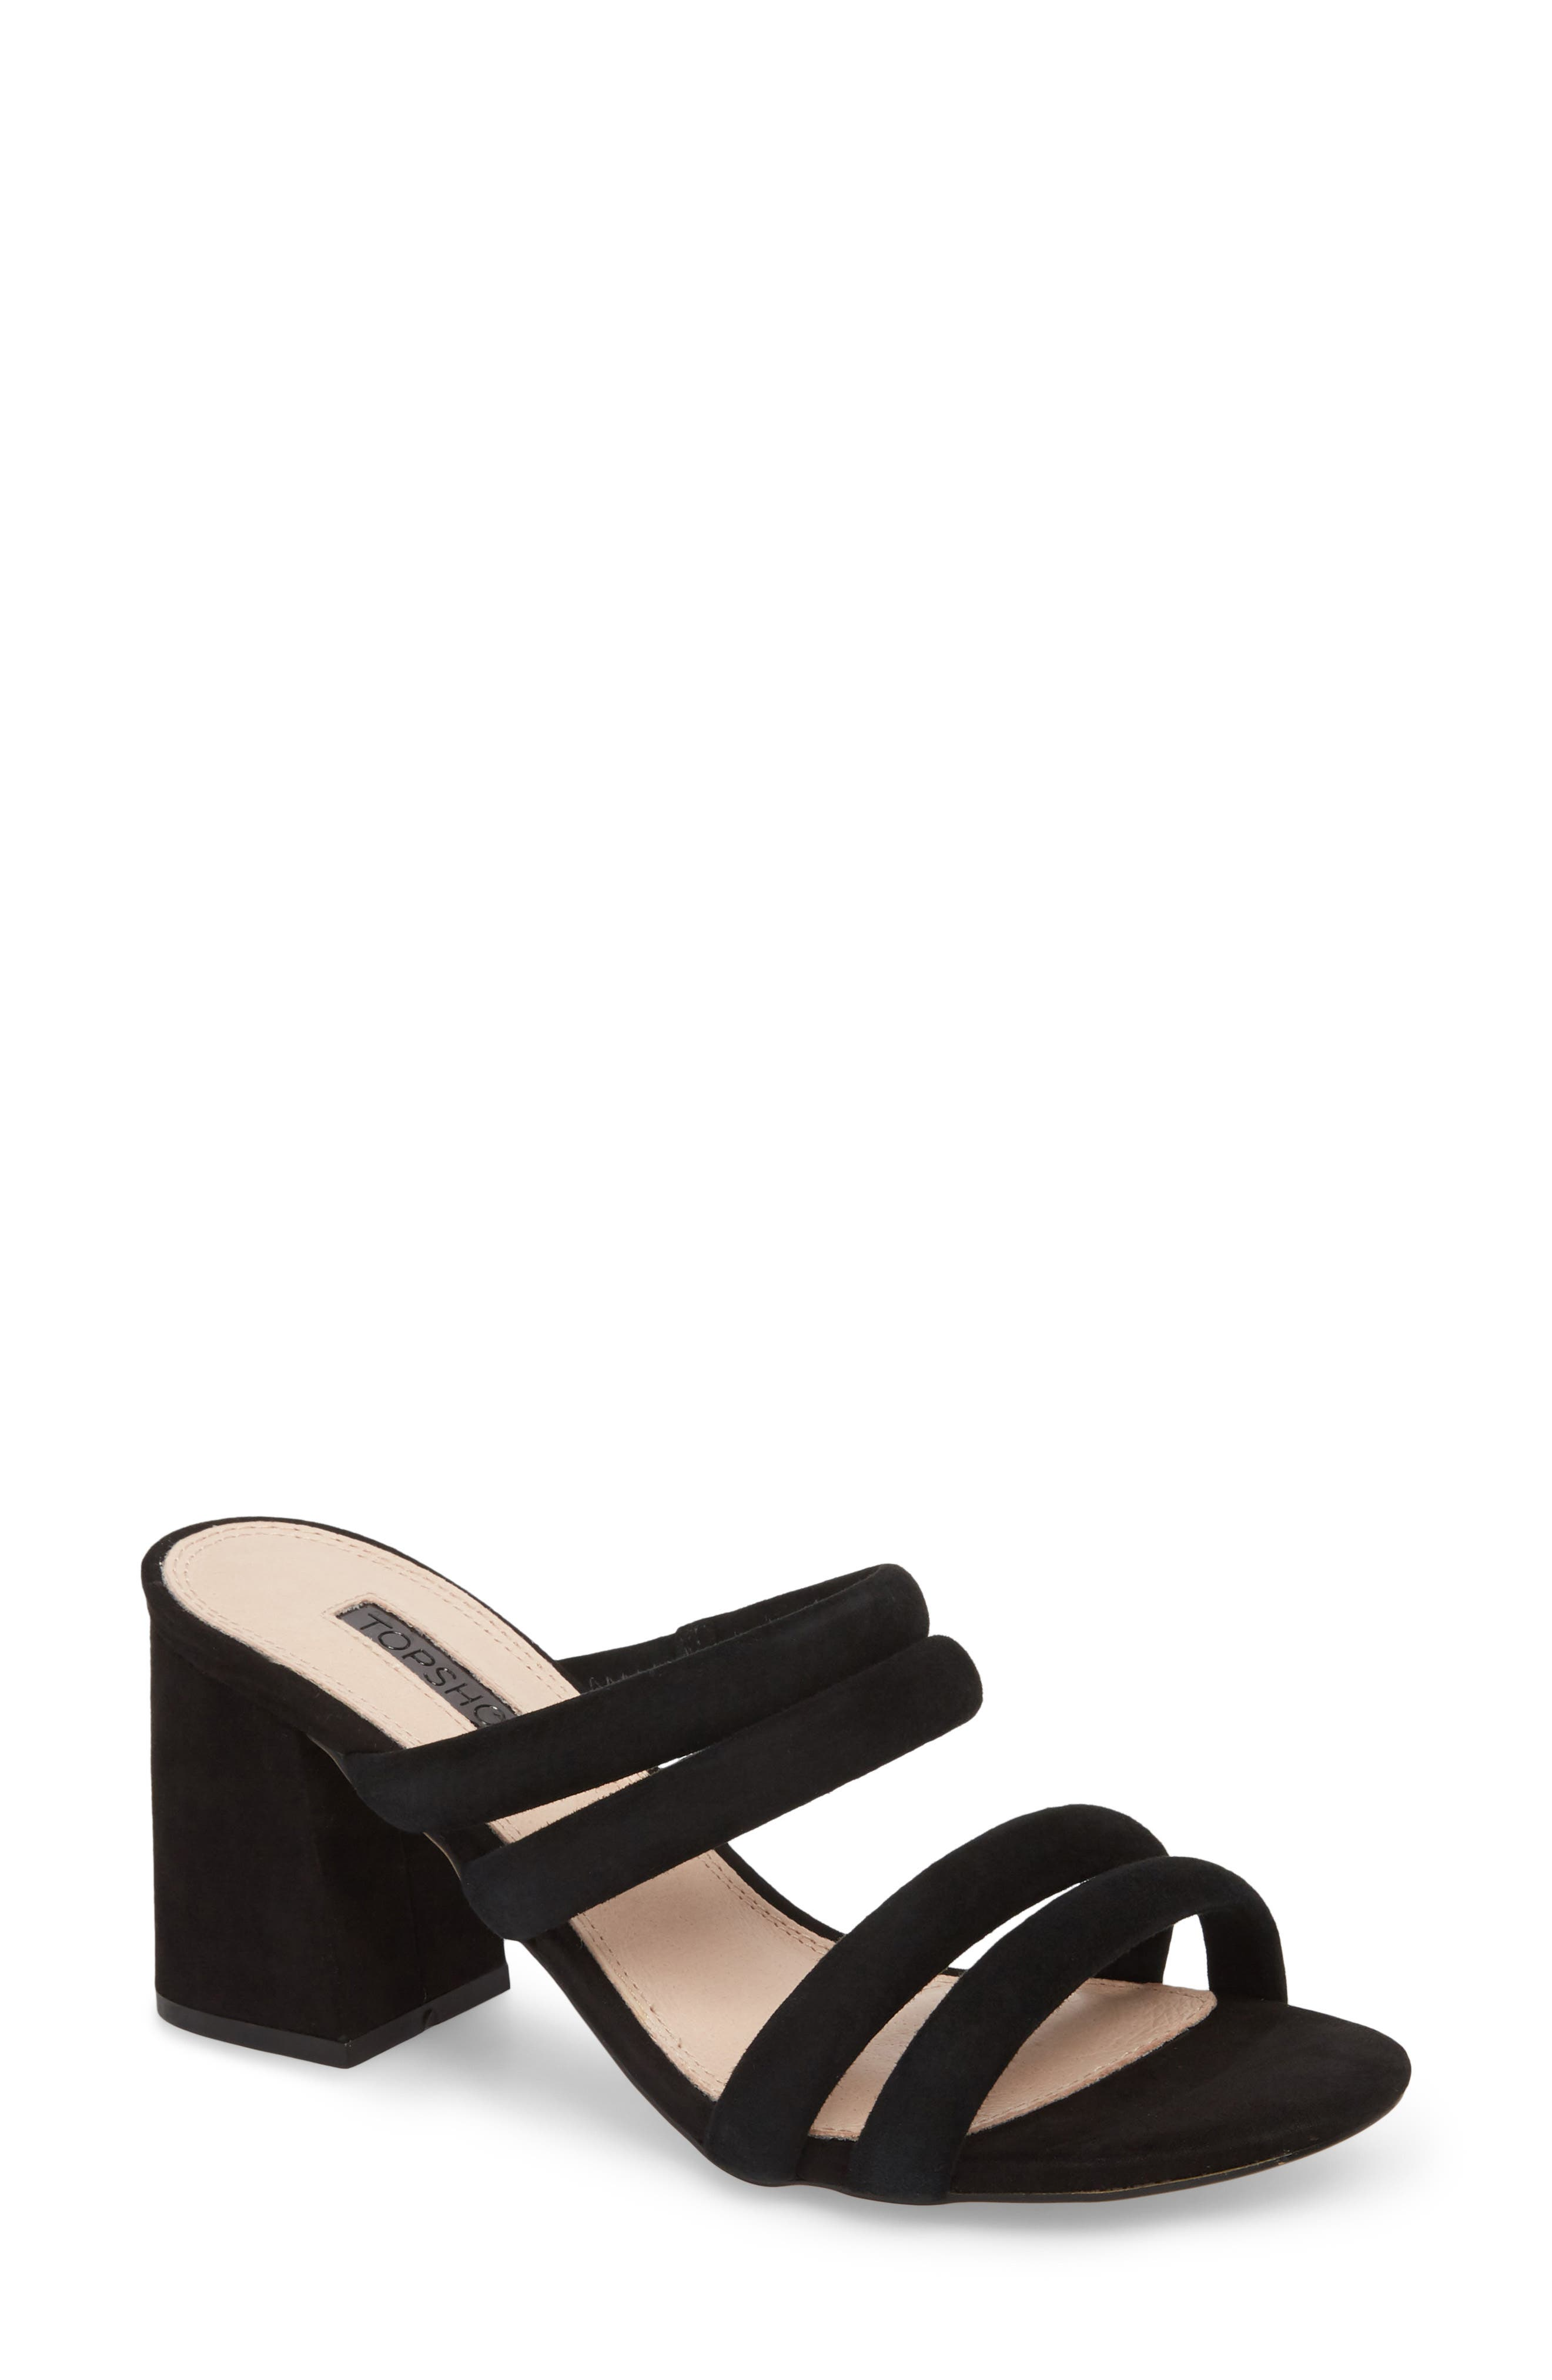 Nicky Four Strap Slide,                             Main thumbnail 1, color,                             BLACK